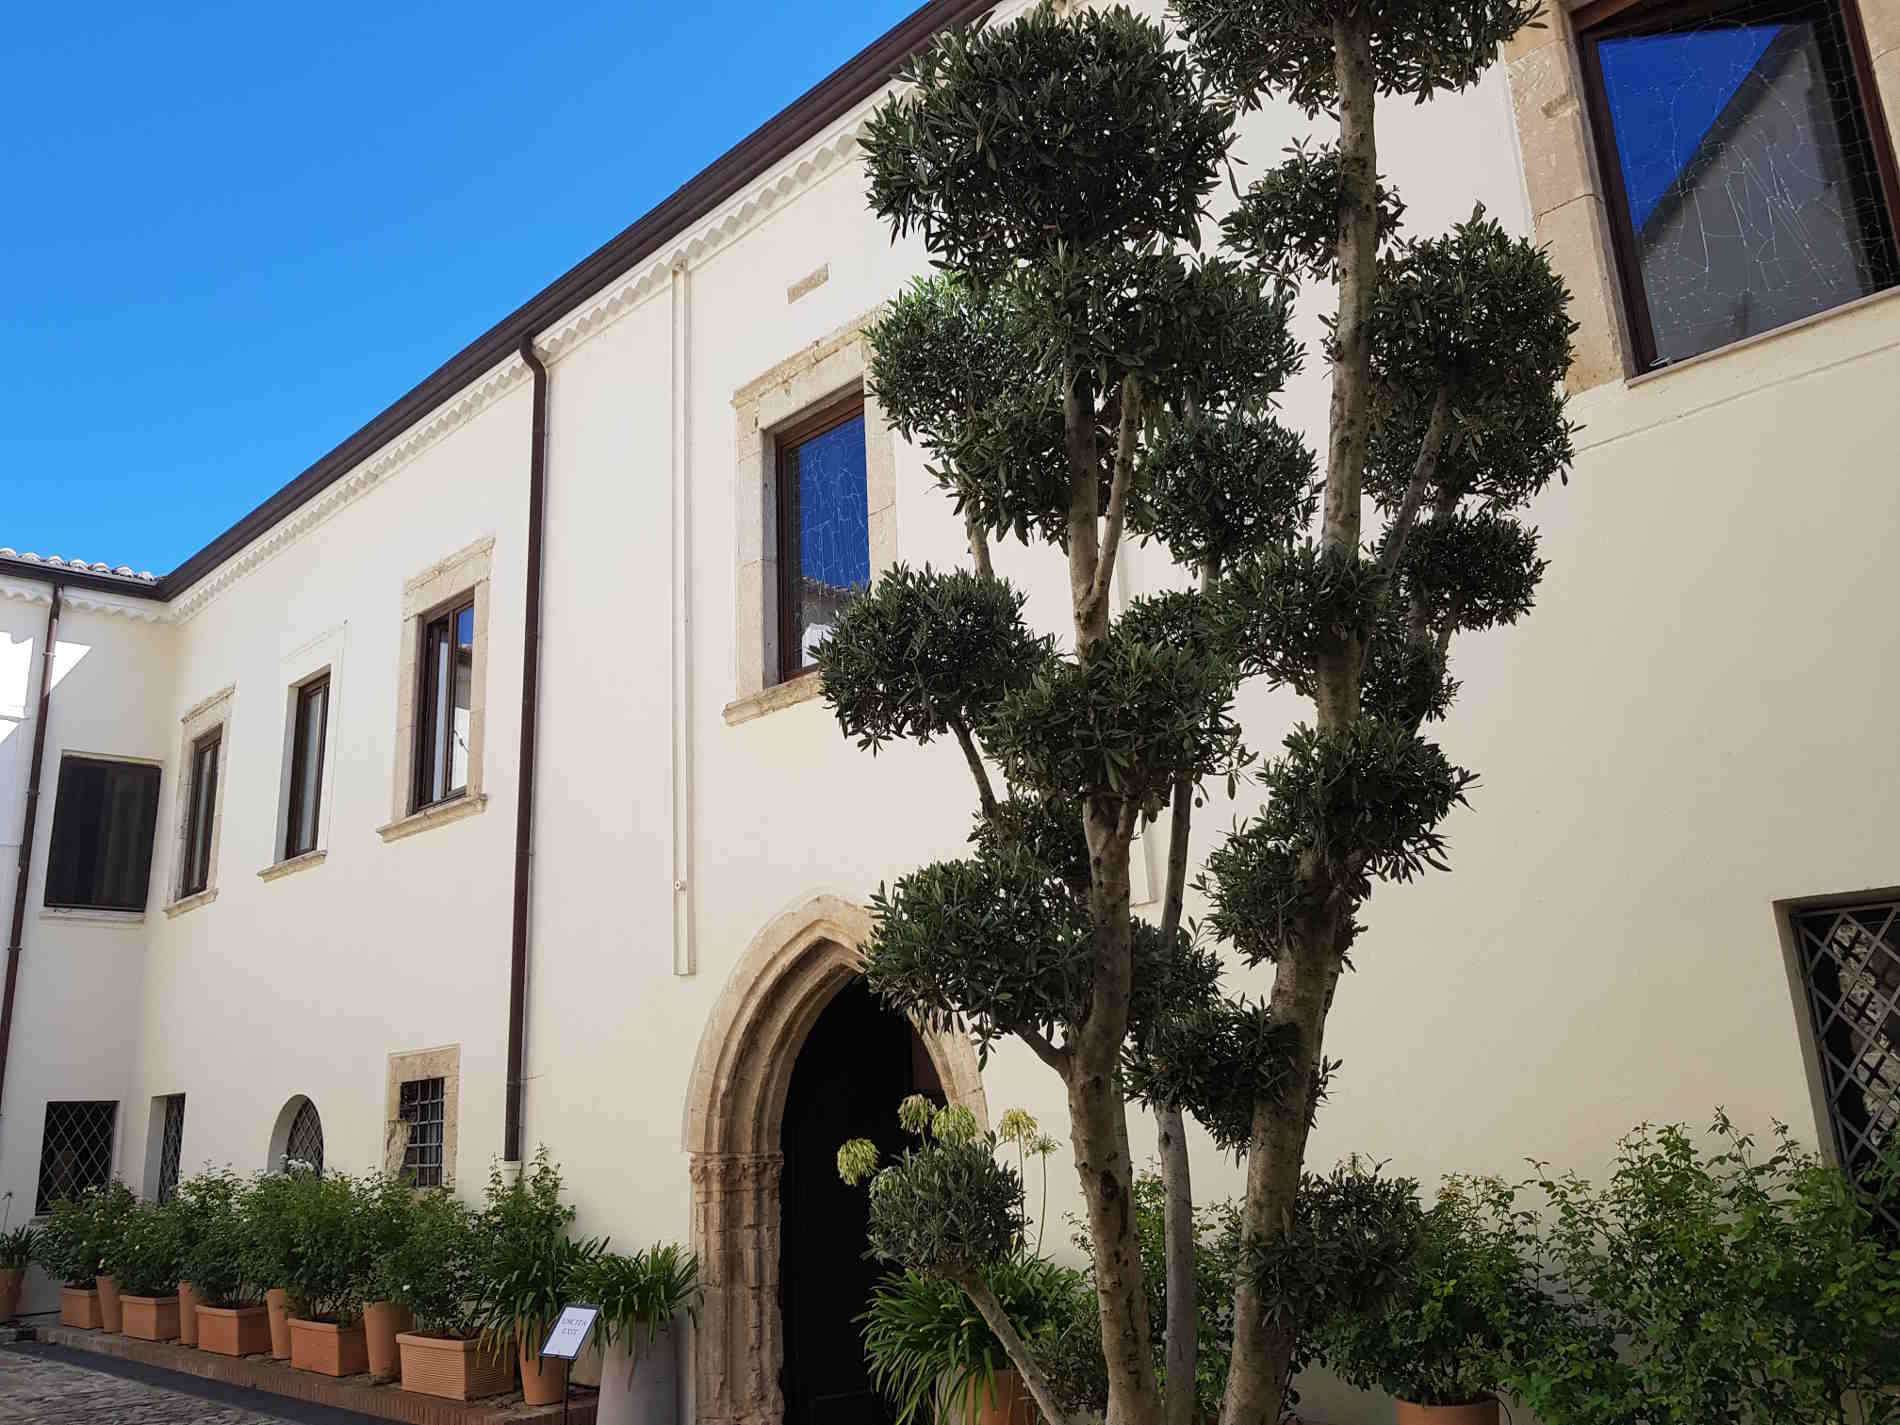 Cortile del Museo Diocesano e Del Codex a Rossano ingresso alle Memory of the world